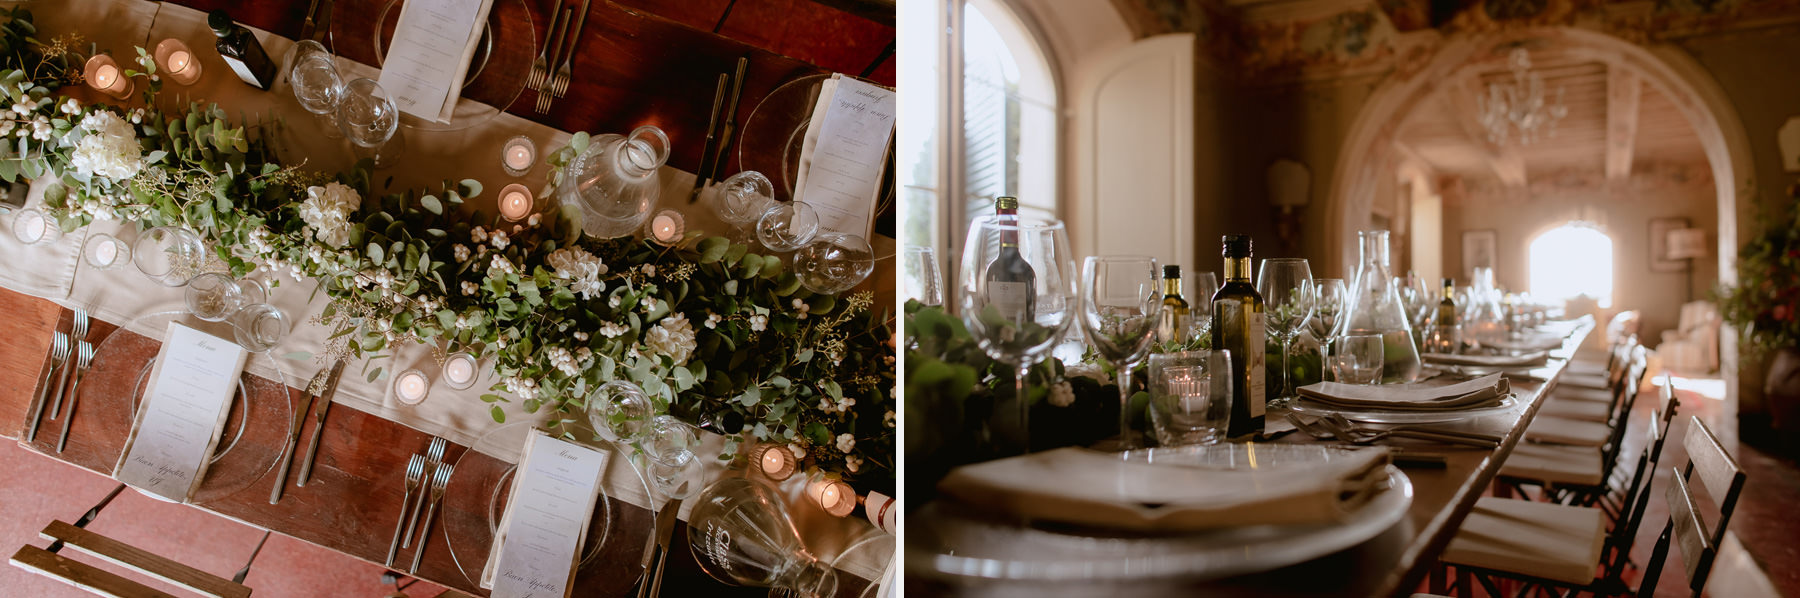 intimate wedding in Tuscany Italy Borgo Stomennano table setup d